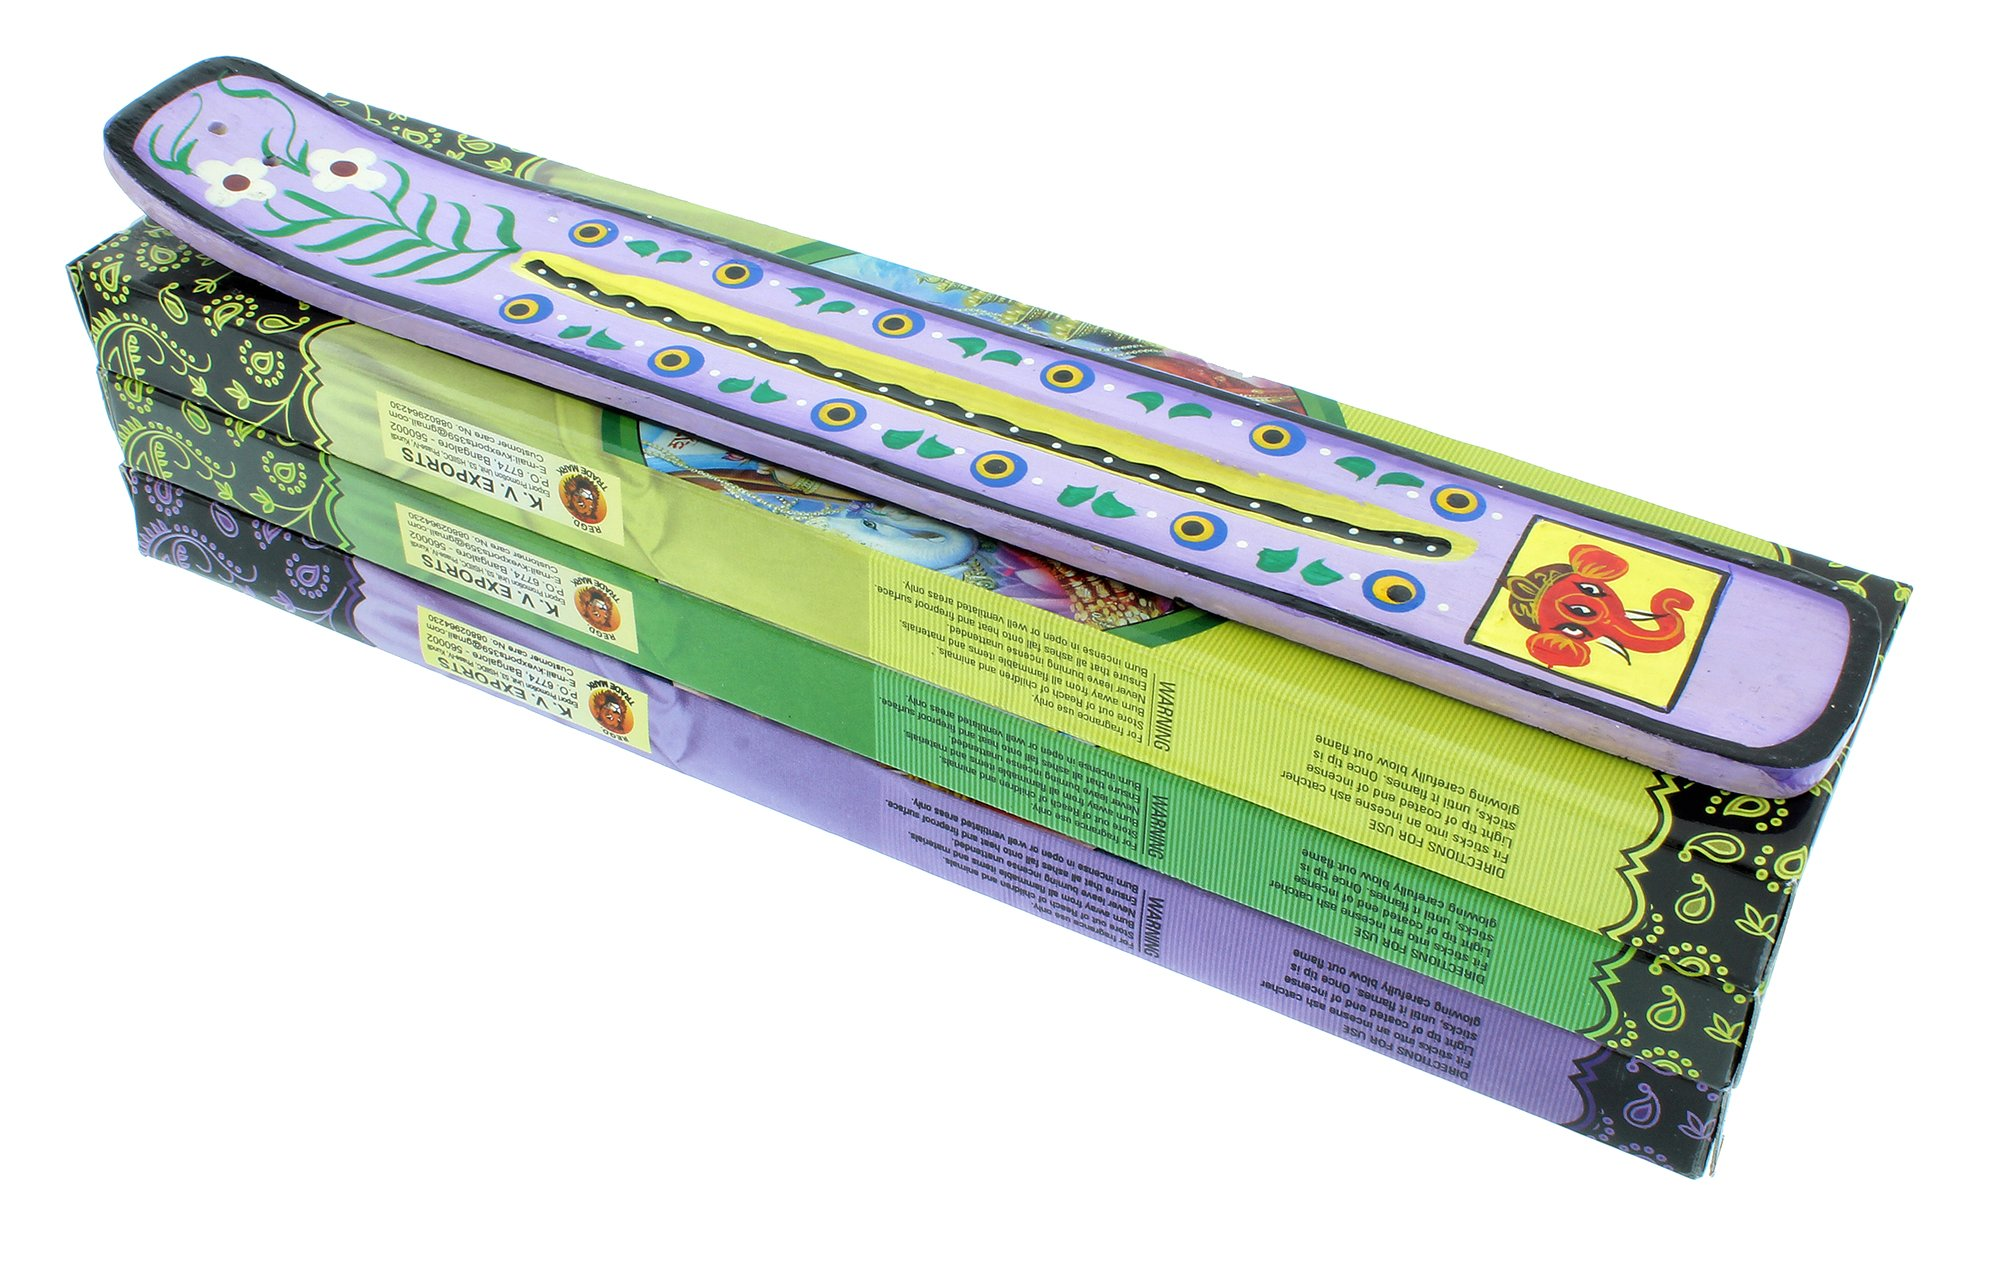 Zen Mood Incense Gift Pack - 3 Boxes of Assorted Indian God Incense and 1 Hand Painted Incense Holder with Ganesh Design - Purple